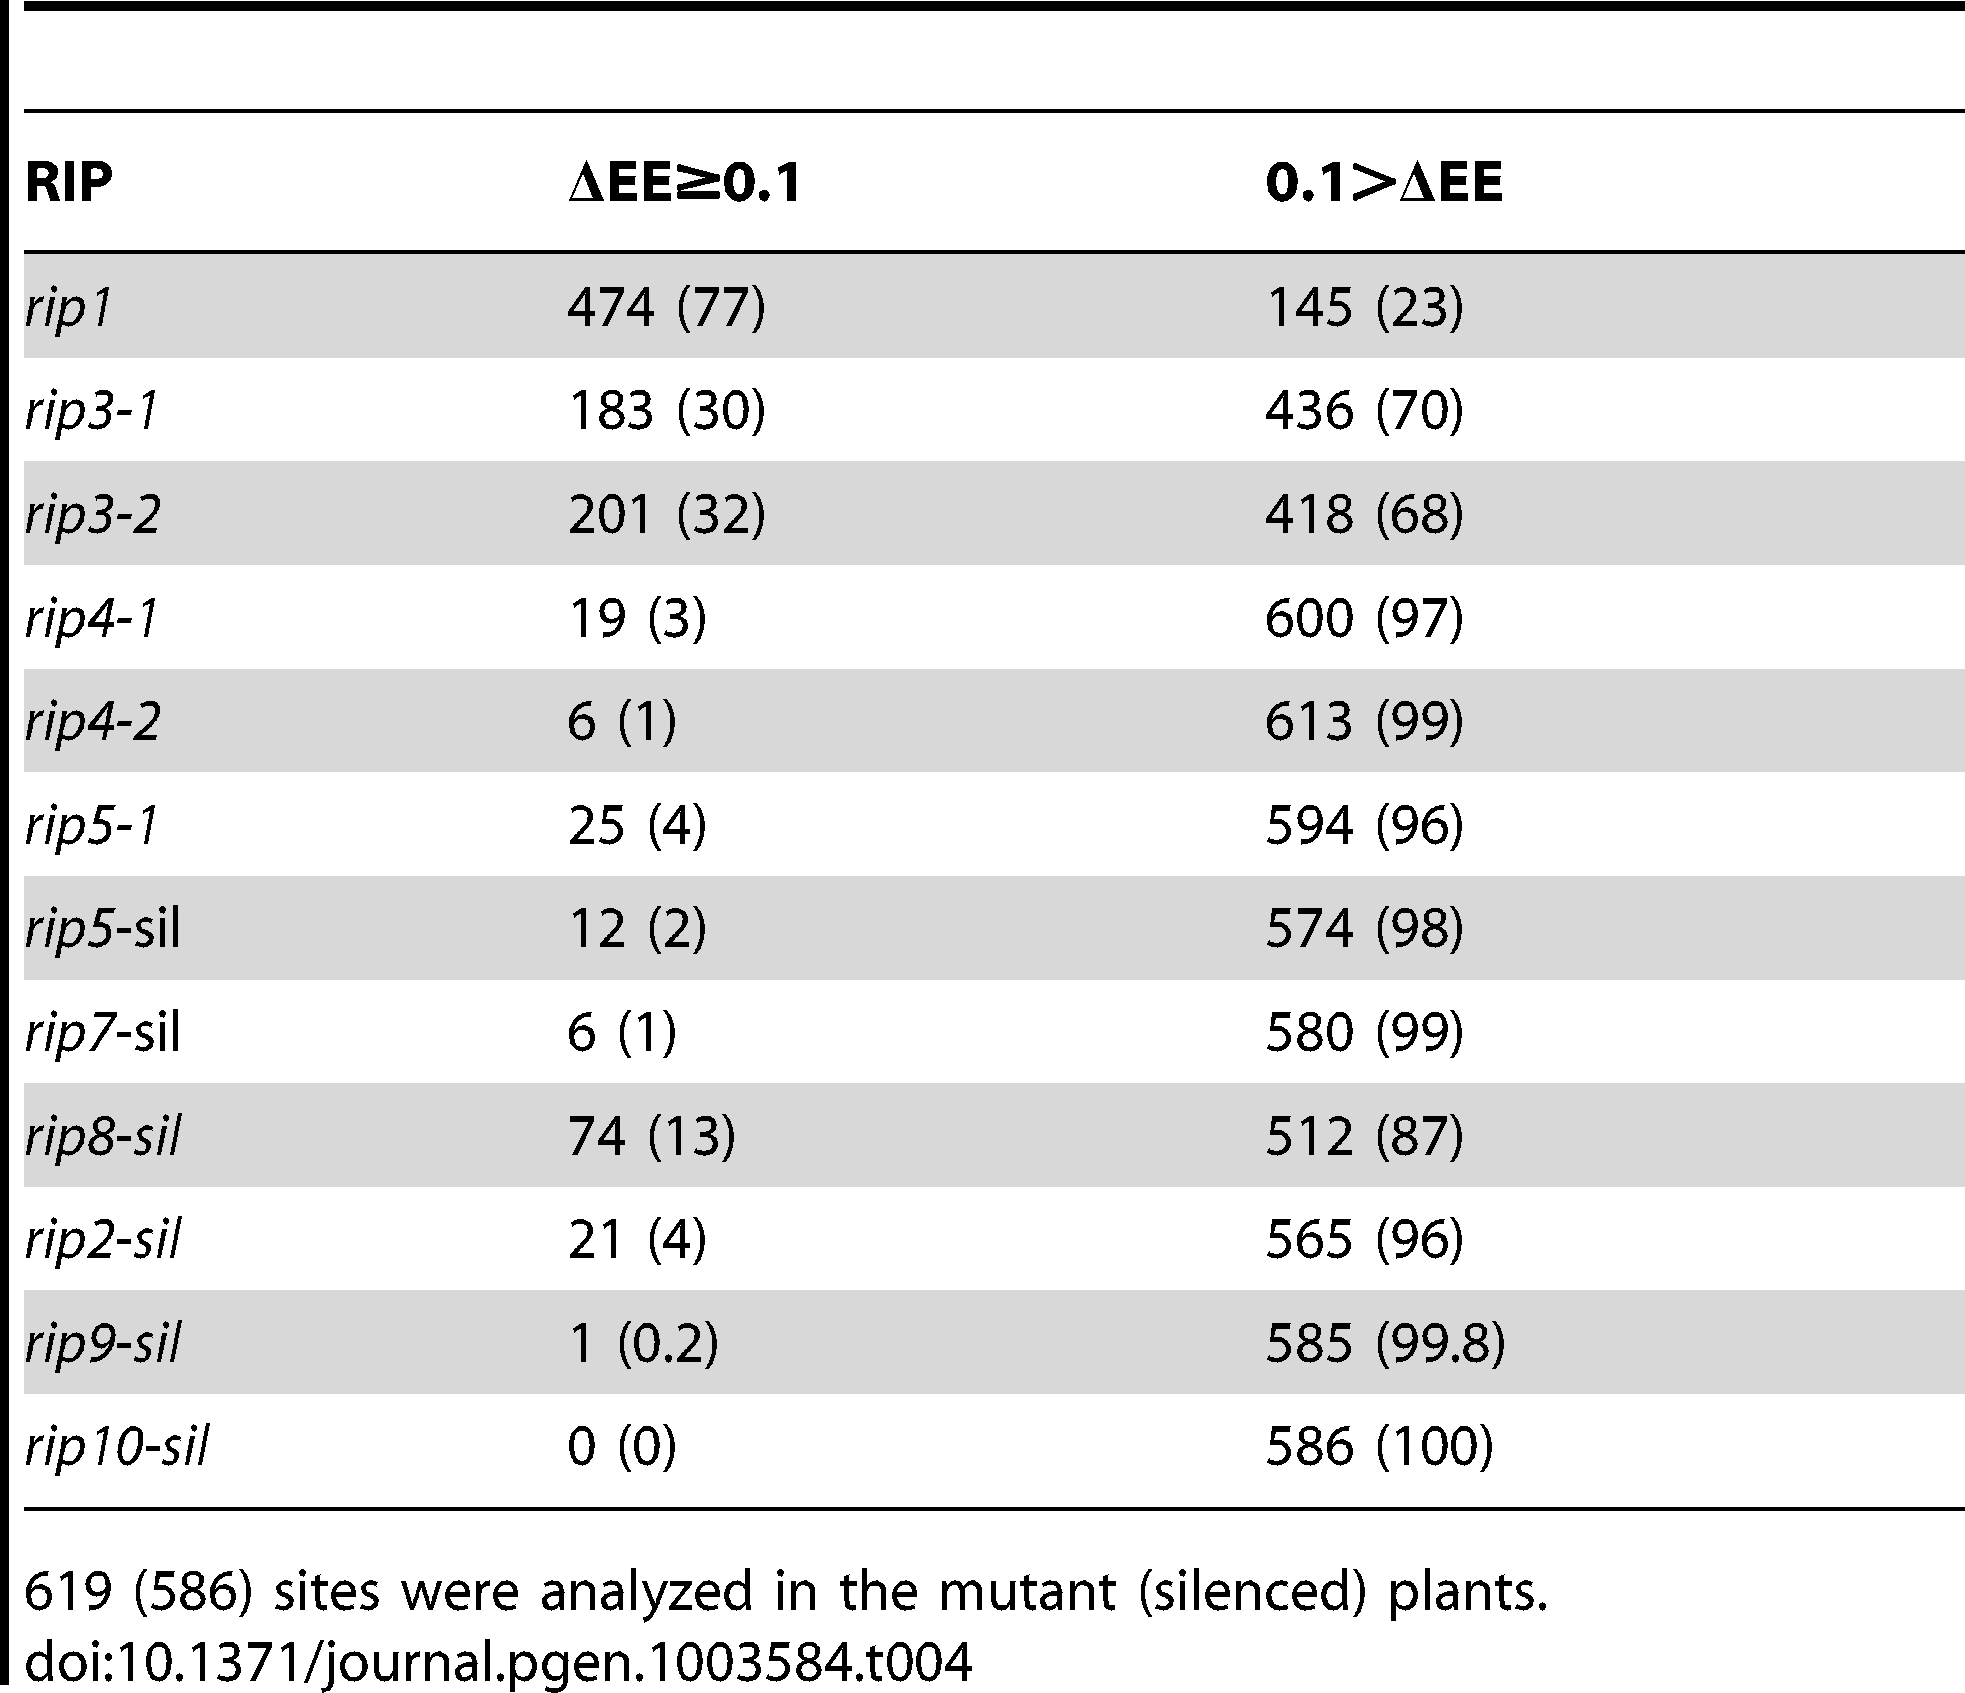 Number (percentage) of <i>RIP</i>-dependent (ΔEE≥0.1) and <i>RIP</i>-independent (ΔEE&lt;0.1) mitochondrial sites in the <i>RIP</i> mutant and <i>RIP</i>-silenced plants.